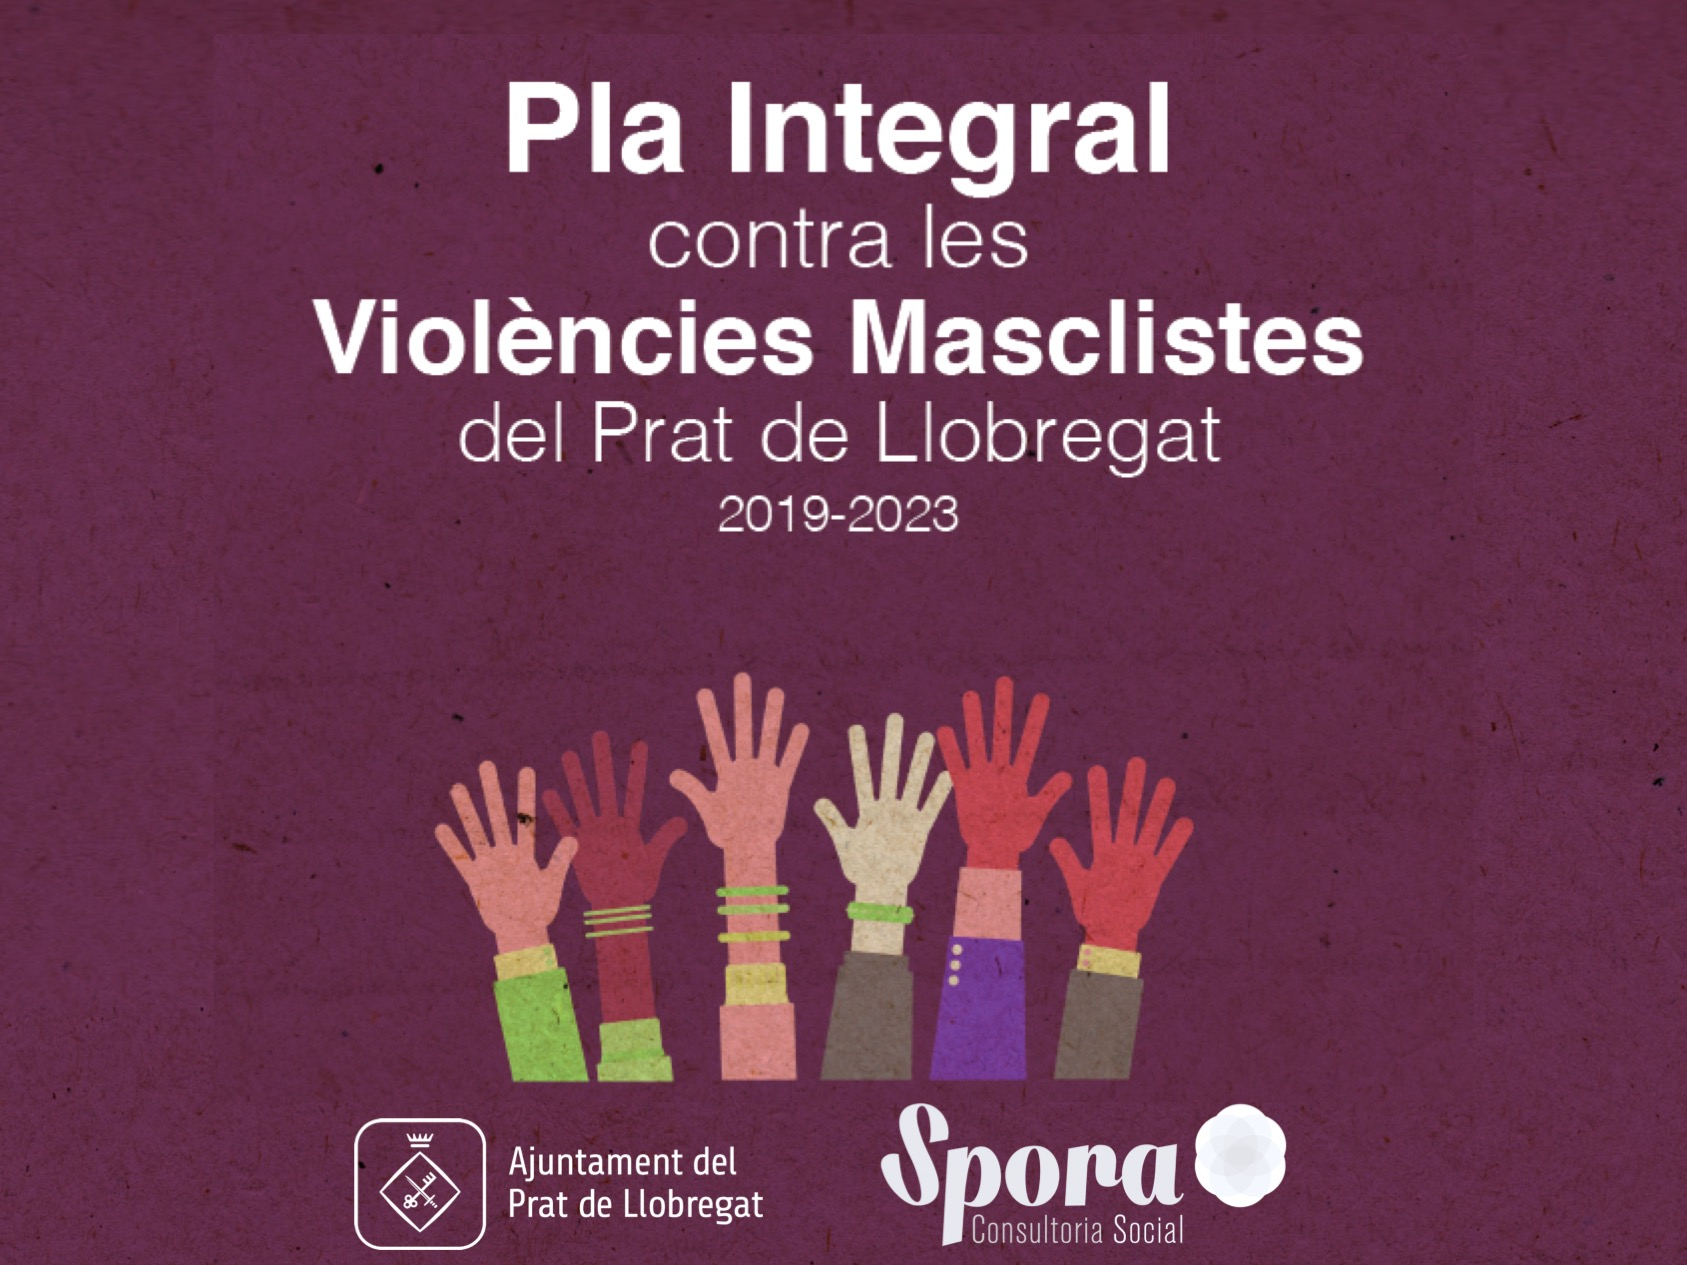 Integral Plan against Gender based Violence of El Prat de Llobregat